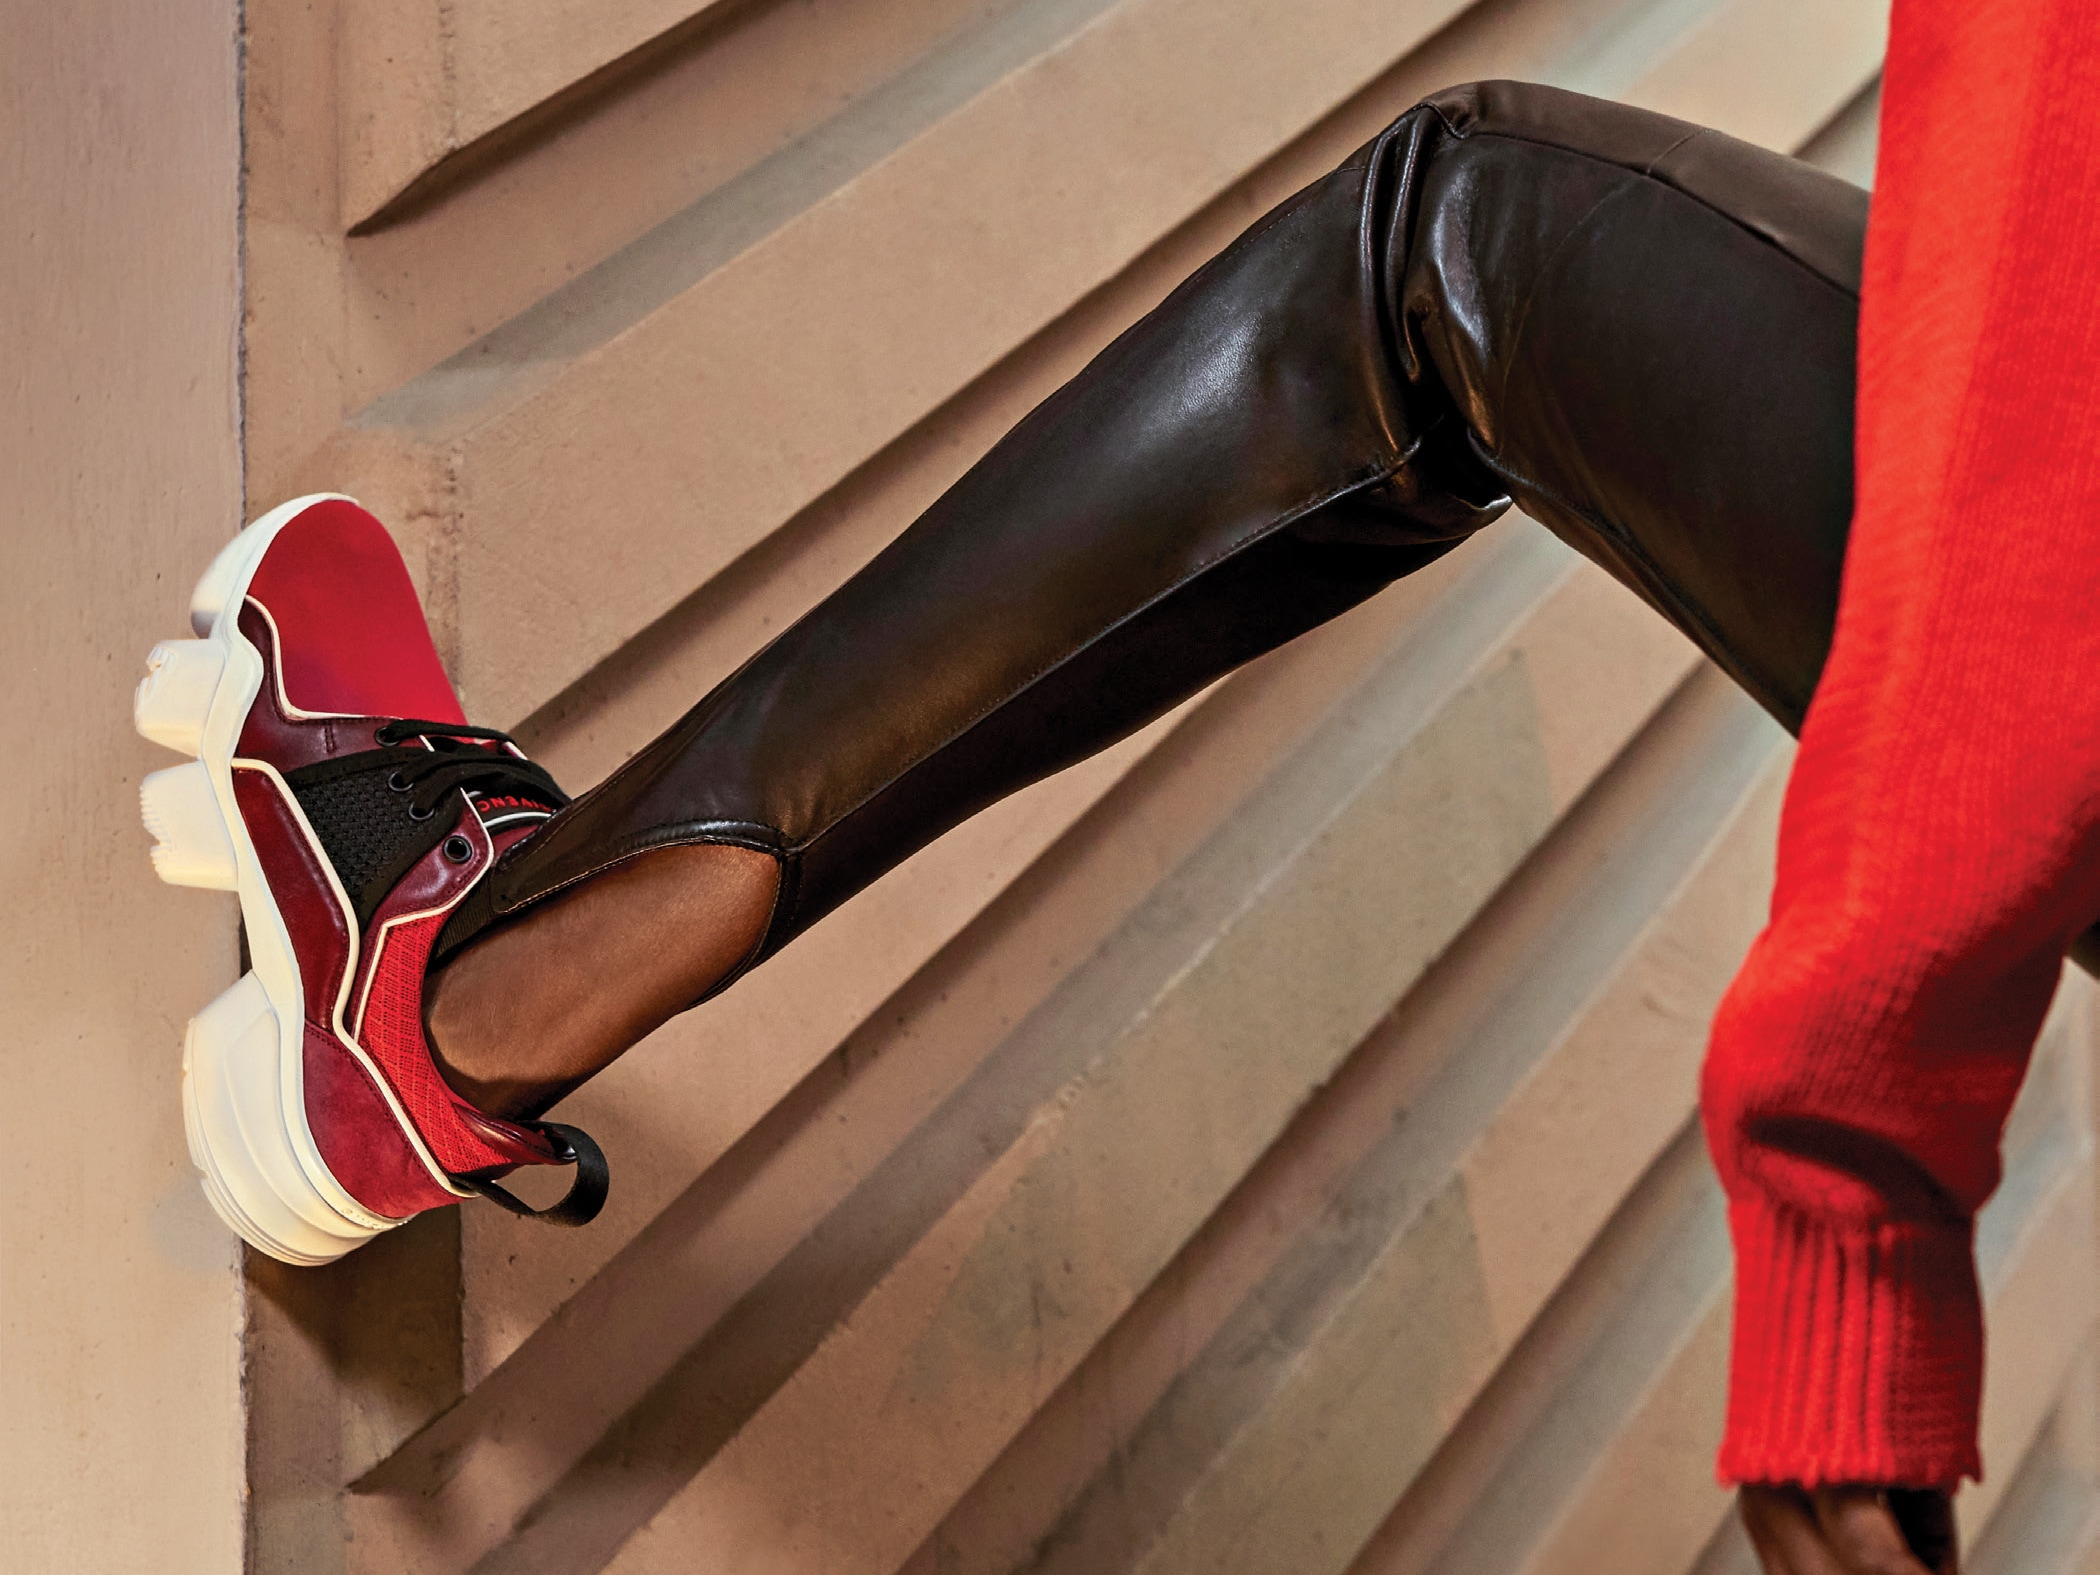 Givenchy Launches the Must-Have Sneaker